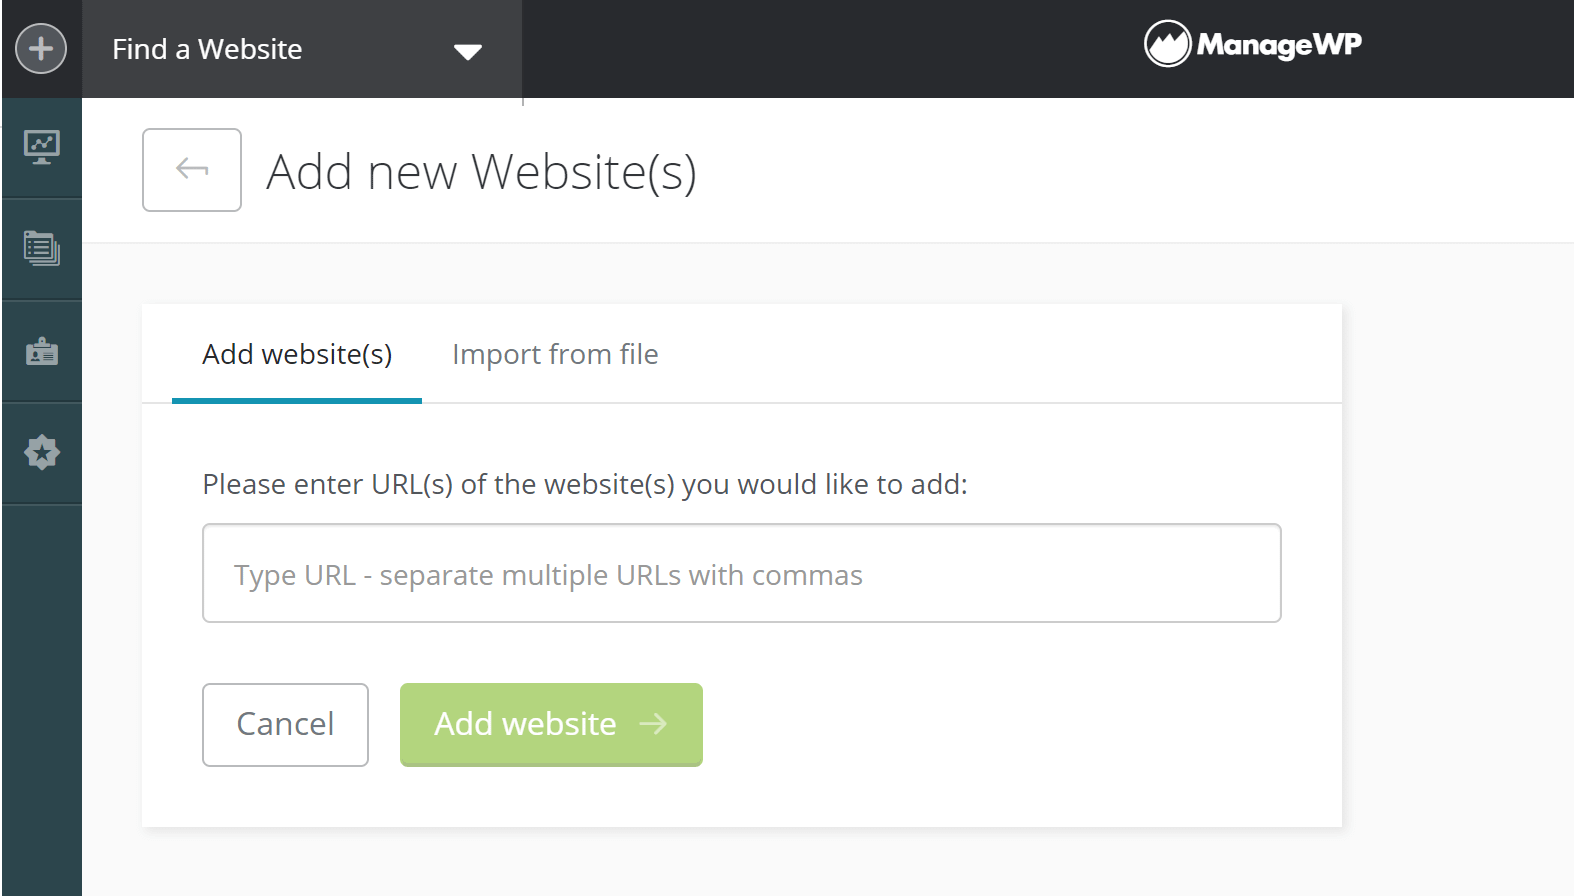 Add a website to ManageWP